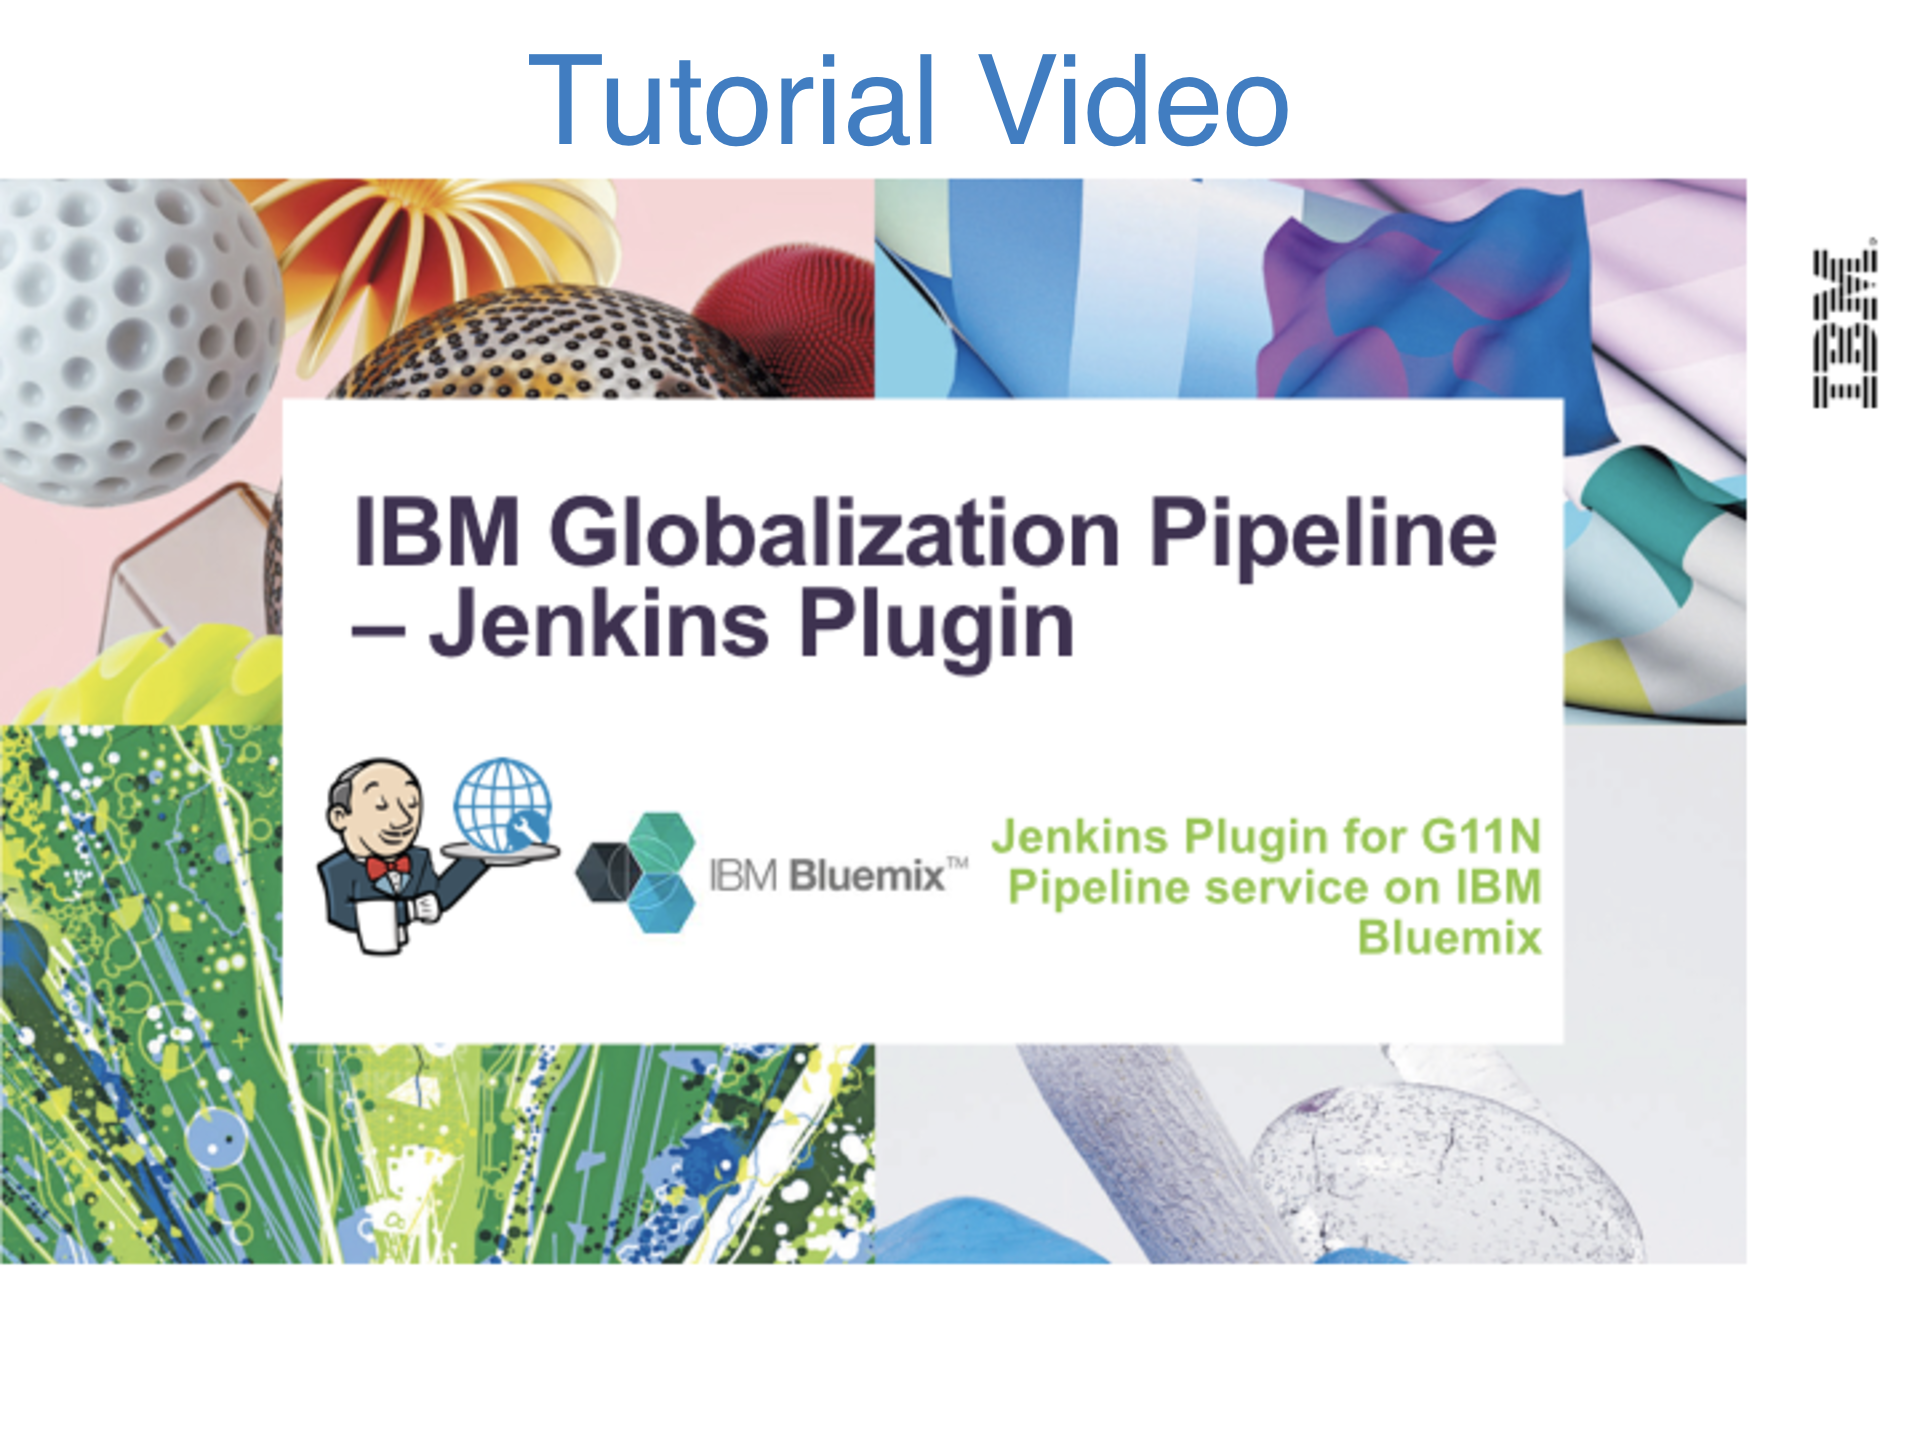 Globalization Pipeline Jenkins Plugin User Guide | ibm-g11n-pipeline